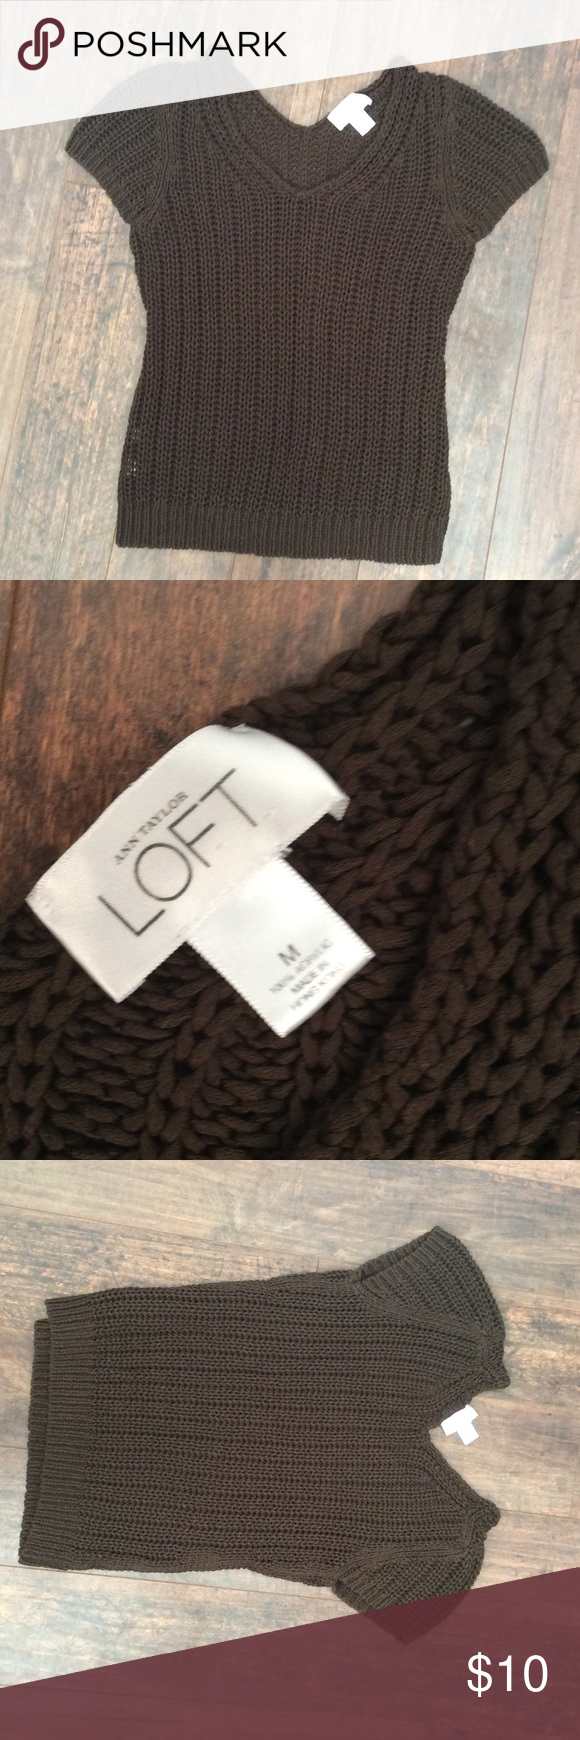 Loft cable knit brown sweater M See pics. True to size LOFT Sweaters V-Necks